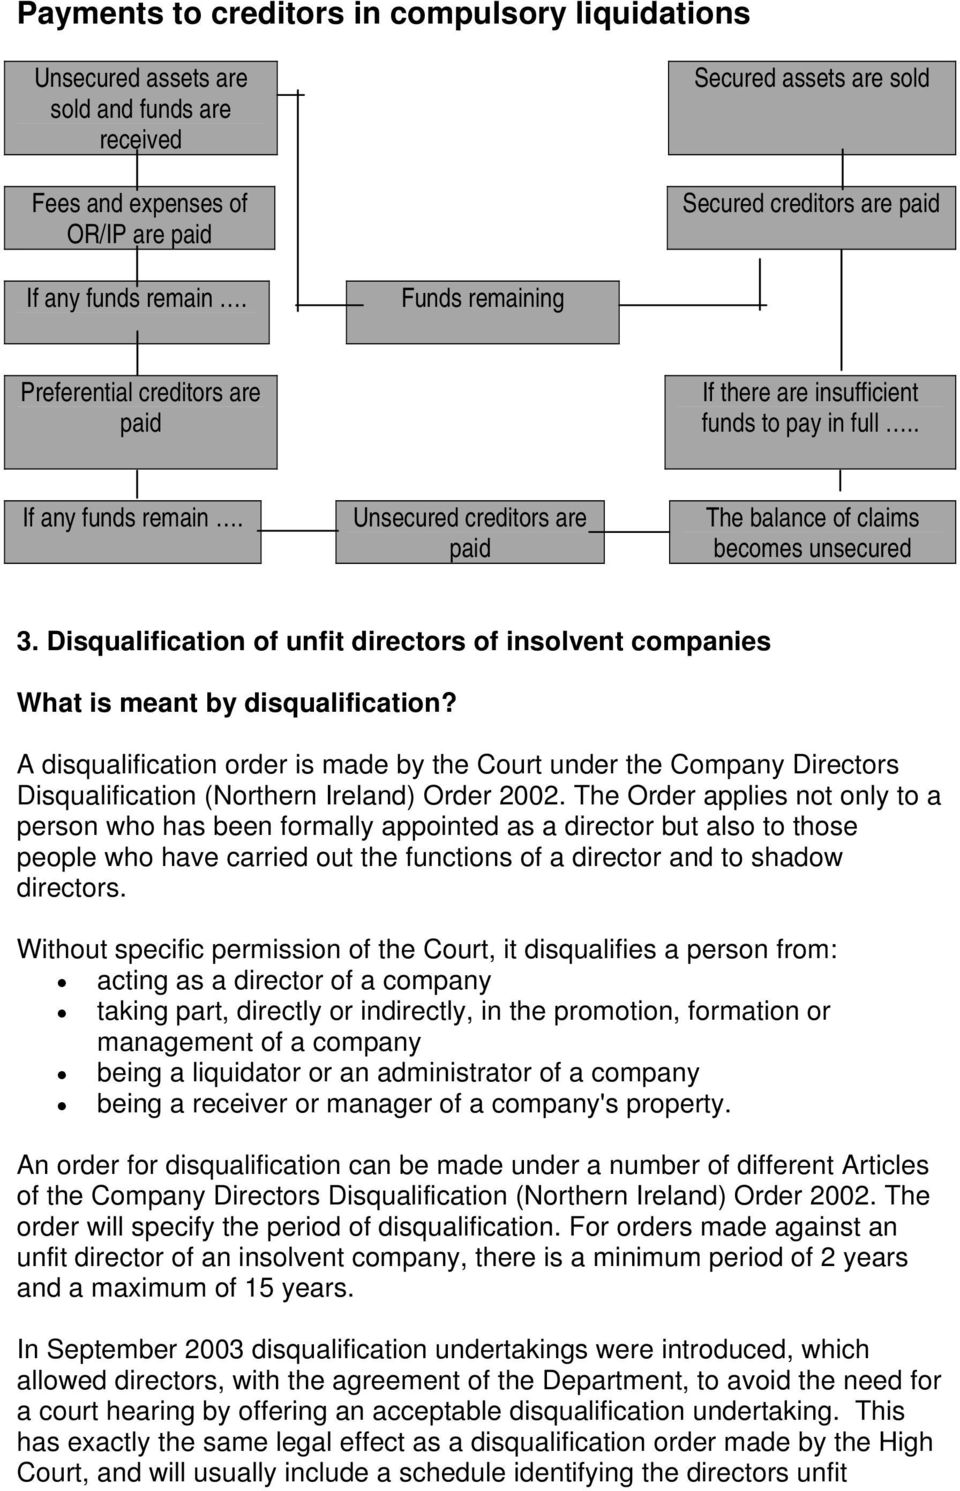 Disqualification of unfit directors of insolvent companies What is meant by disqualification?